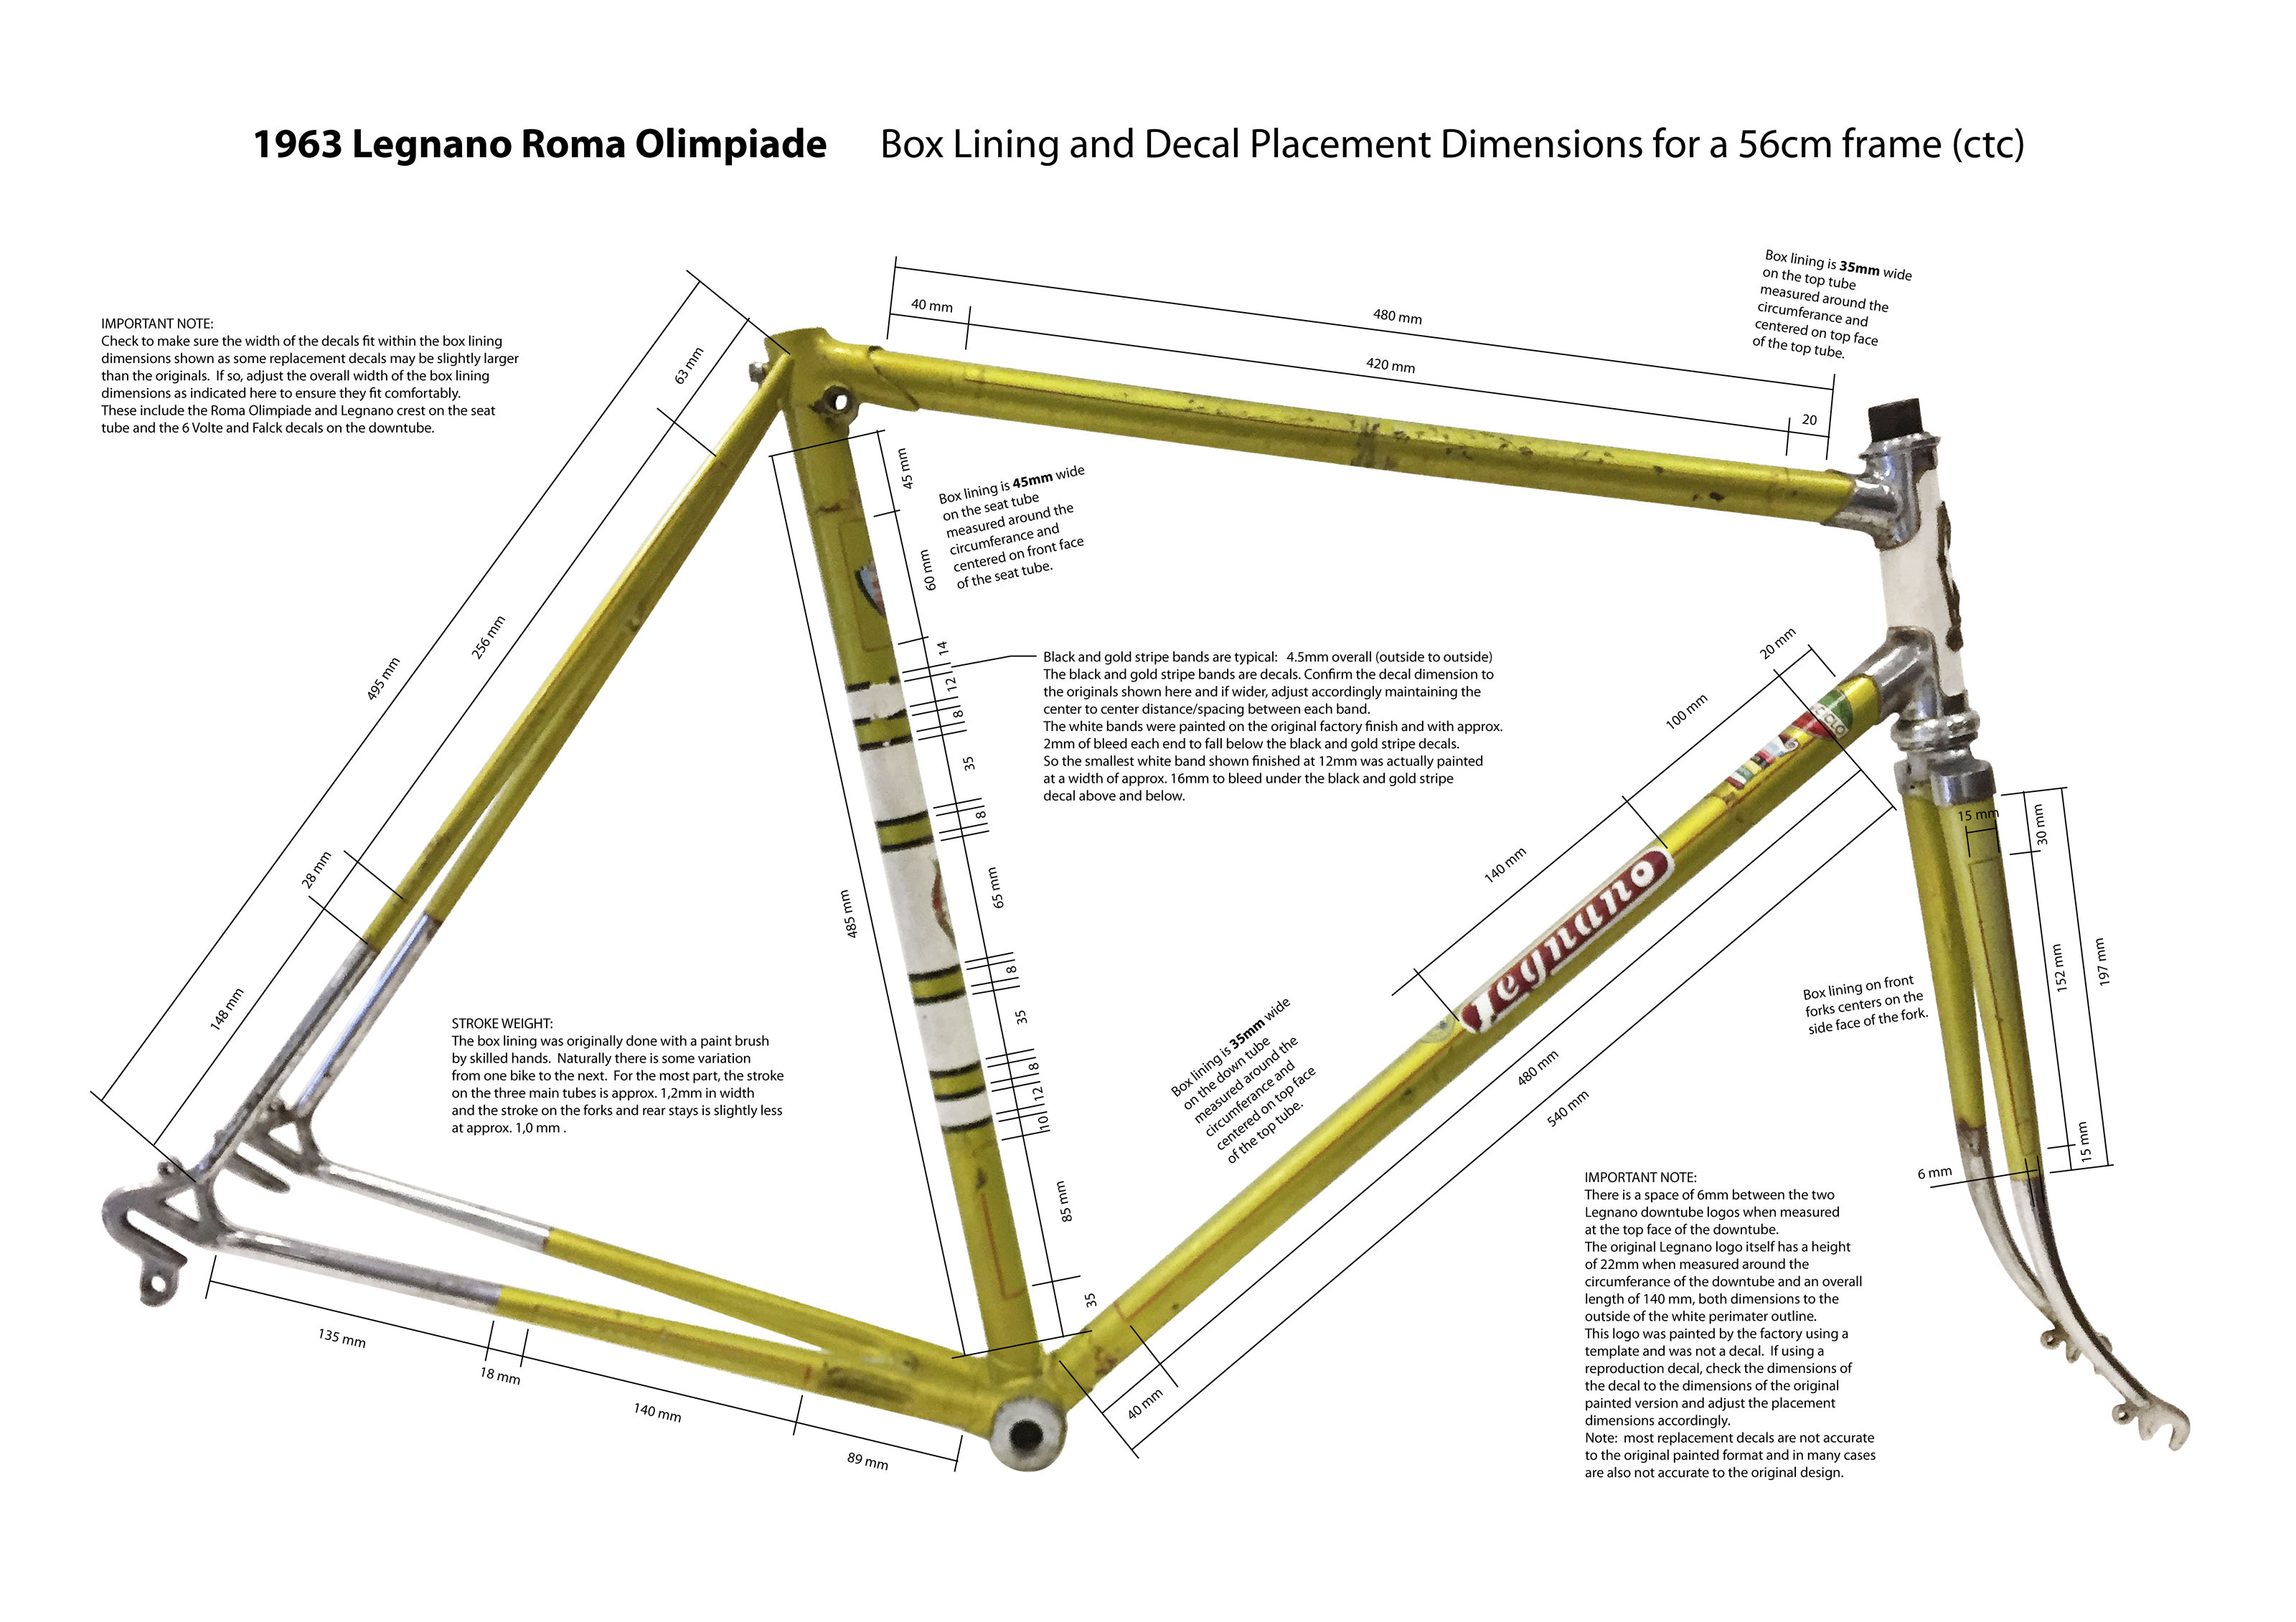 Box Lining And Decal Placement Dimensions When Refinishing A Legnano